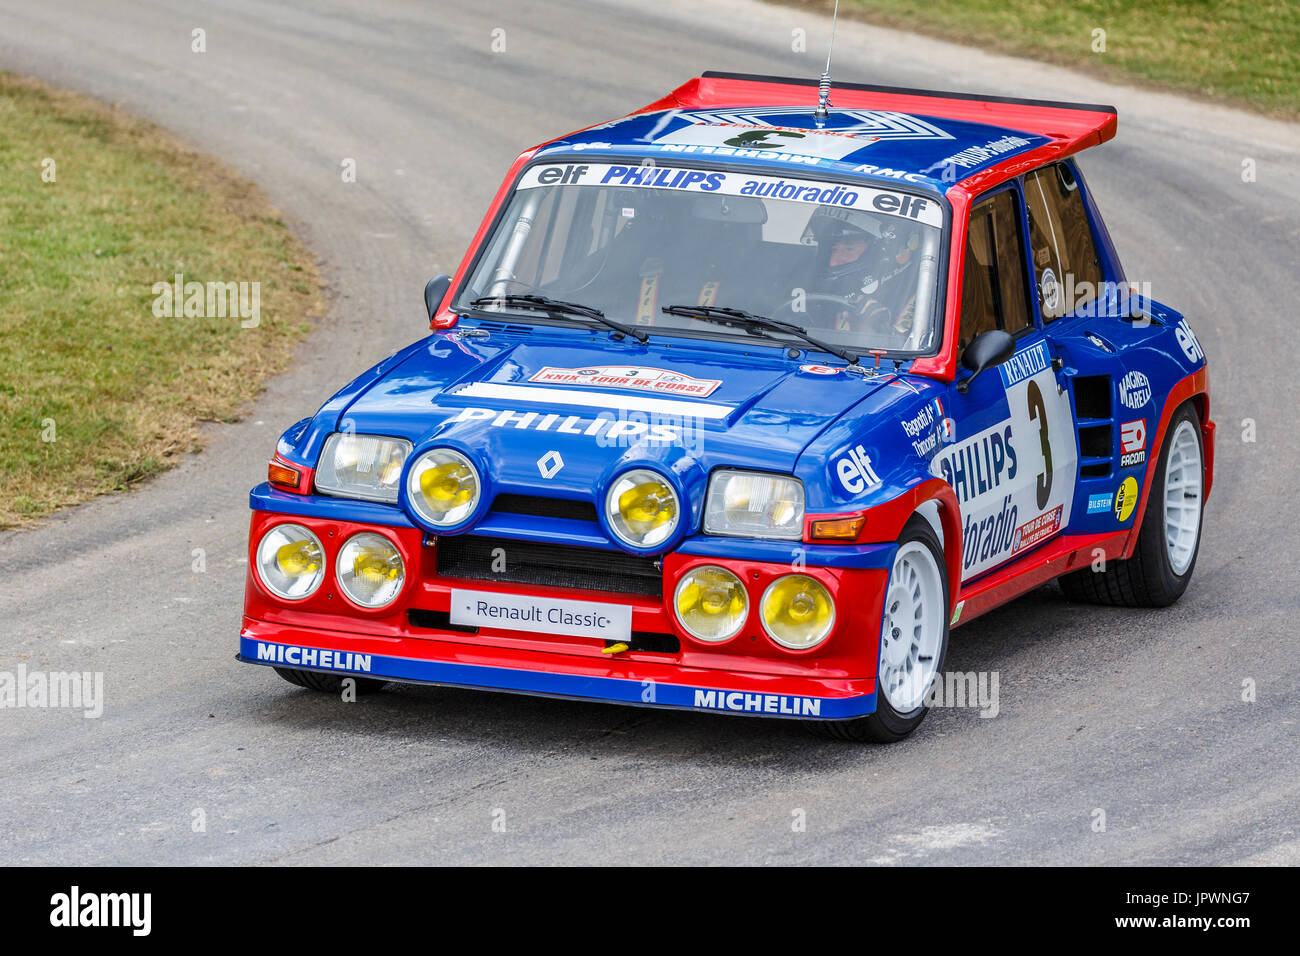 1985 renault 5 maxi turbo rally car with driver jean ragnotti at the stock photo 151771095 alamy. Black Bedroom Furniture Sets. Home Design Ideas